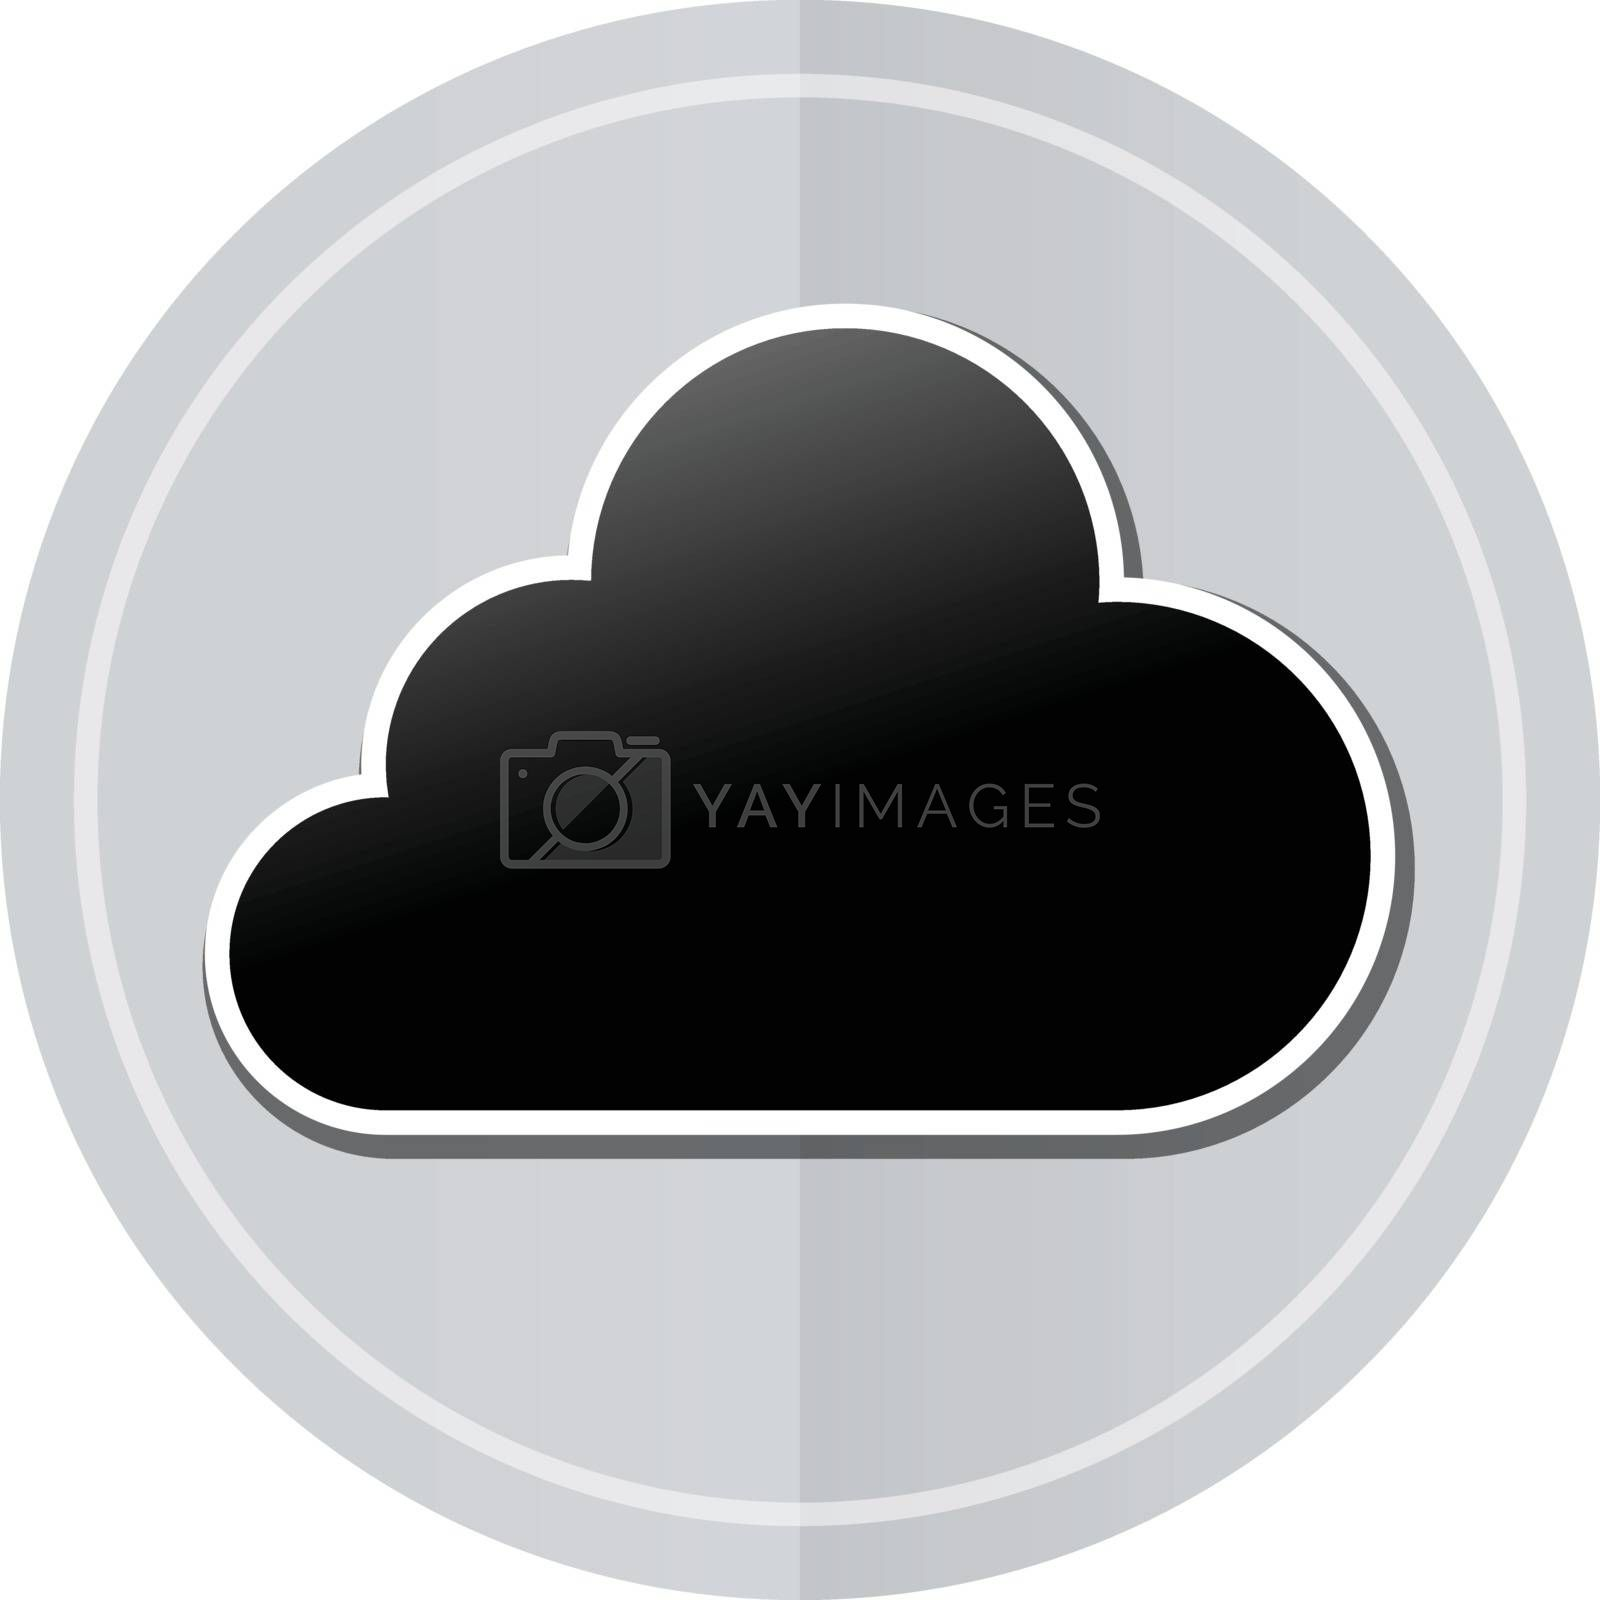 Illustration of cloud sticker icon simple design